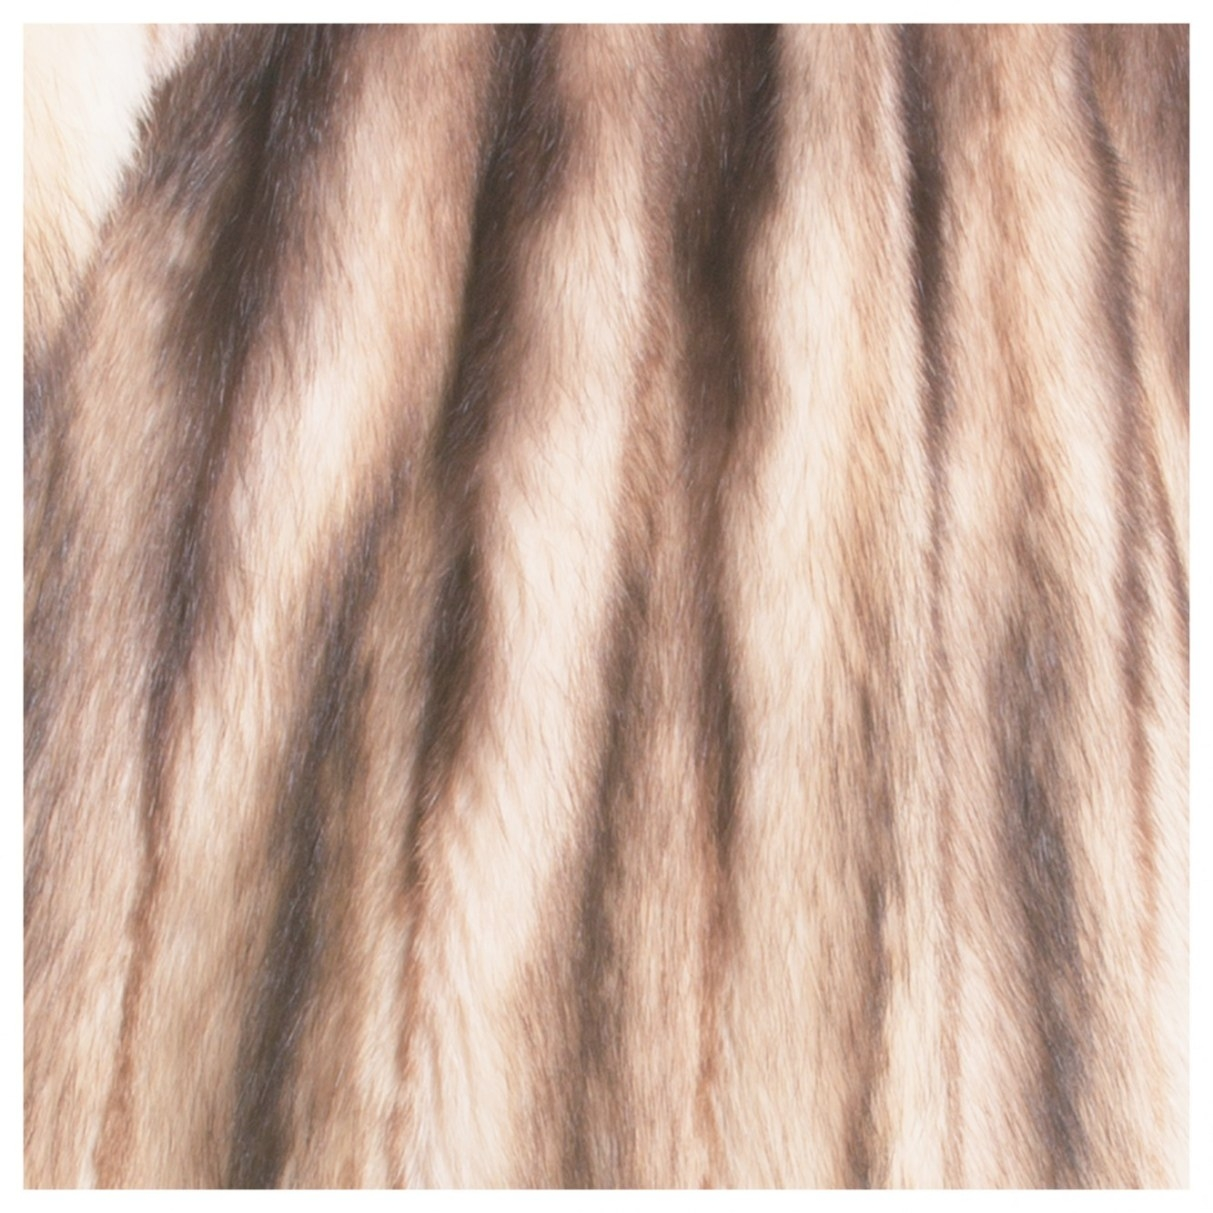 Buy Polecat Fur Jacket Shade Light Brown In A Sable Color throughout What Color Is Sable